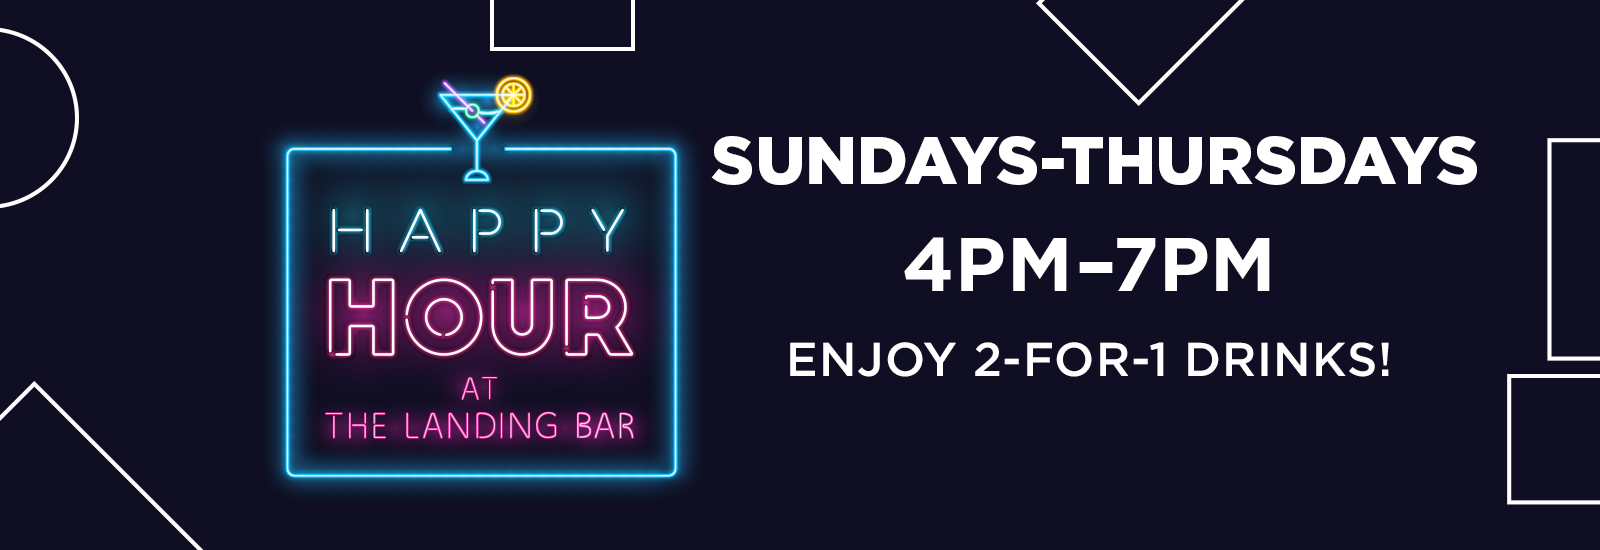 TLH Sunday- Thursday Happy Hour